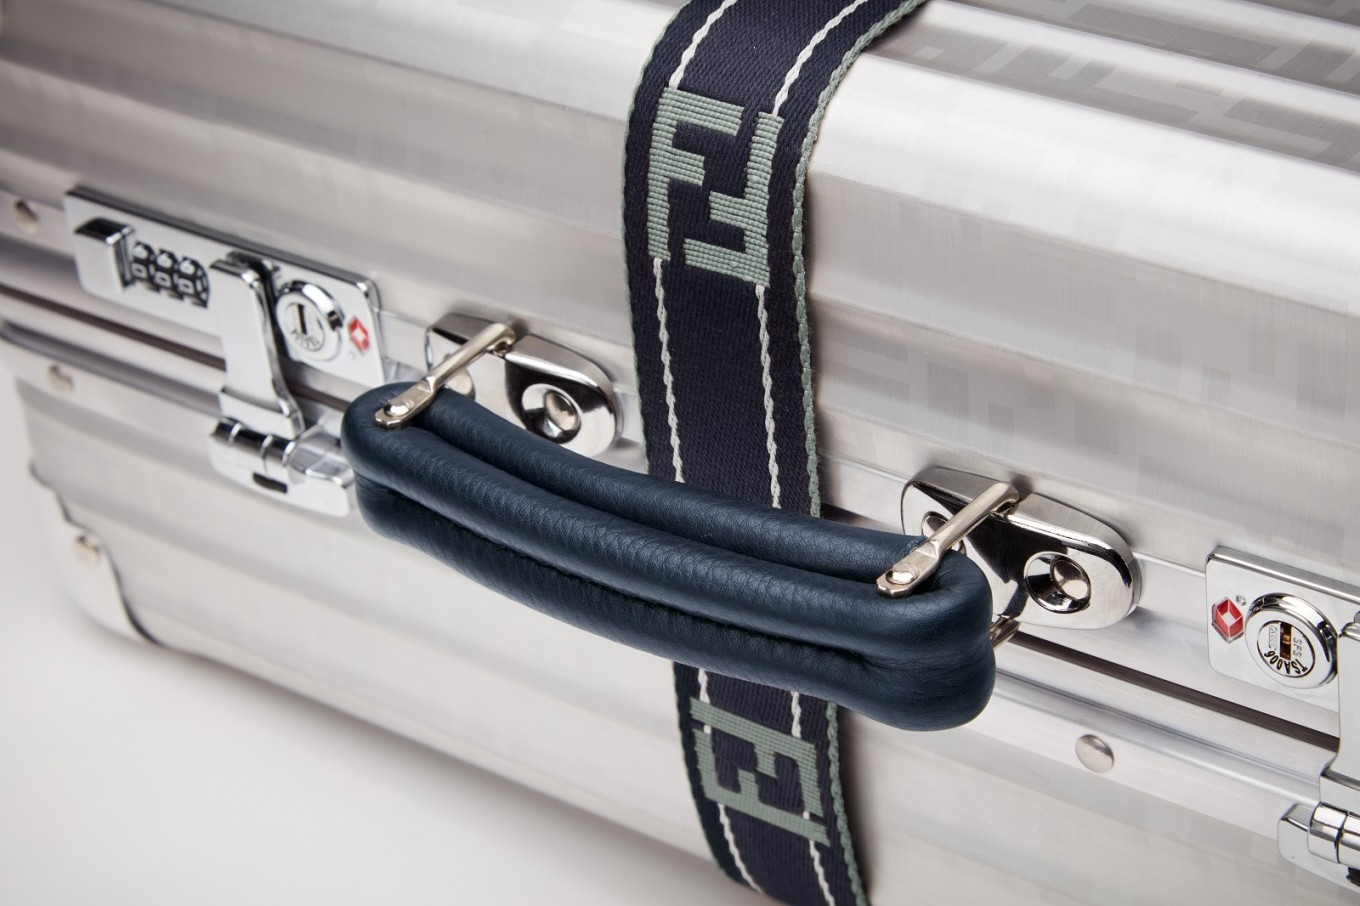 Fendi, Rimowa team up to release new suitcase line